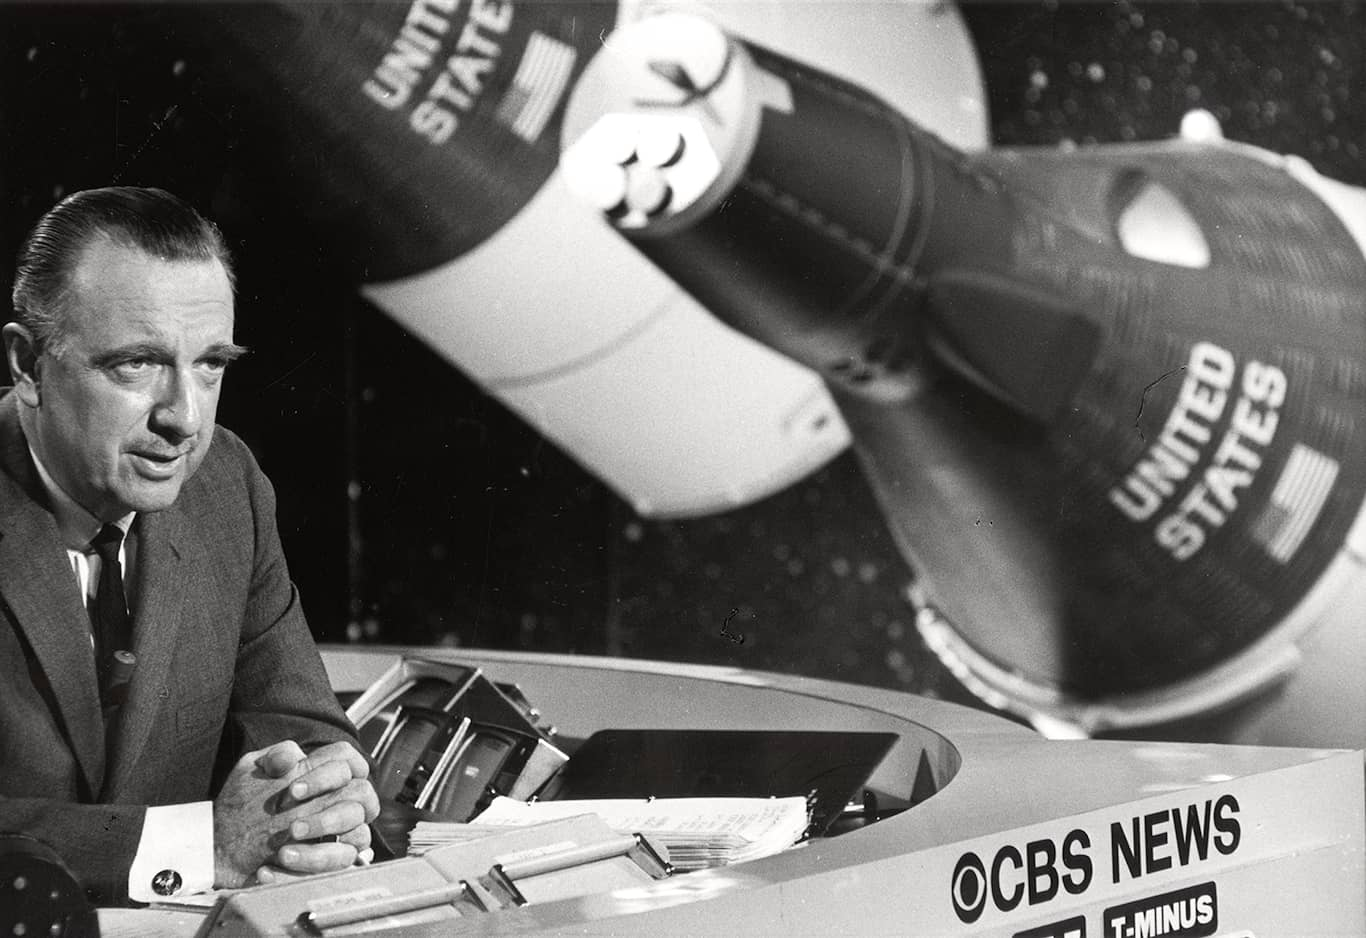 Walter Cronkite at desk and reporting.